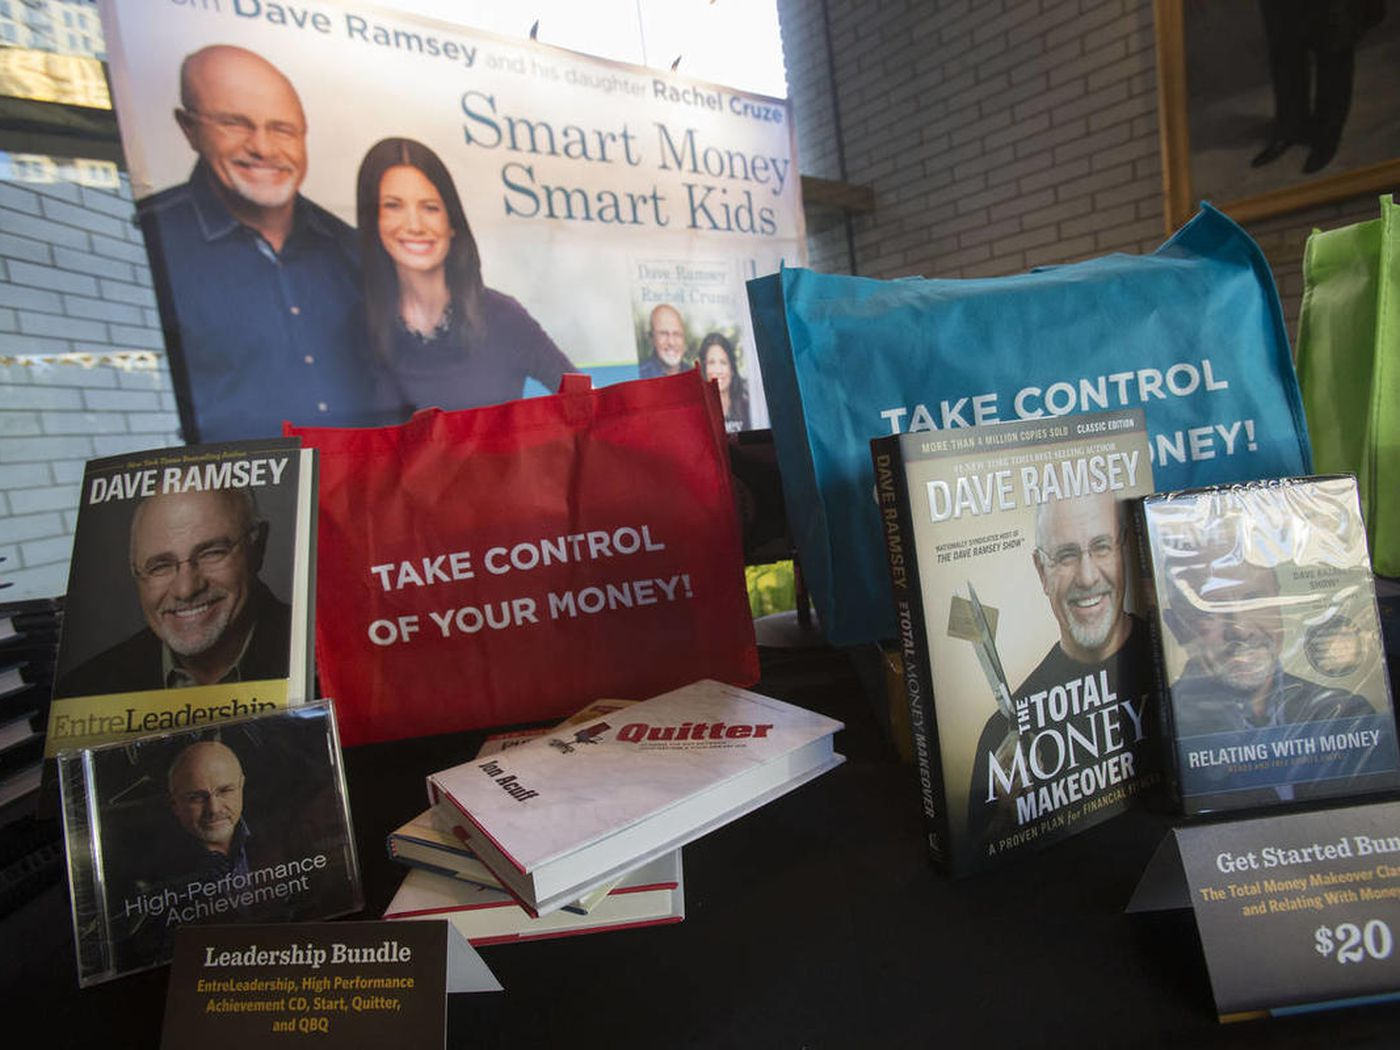 Dave Ramsey talks faith, finances and fame in exclusive Q&A